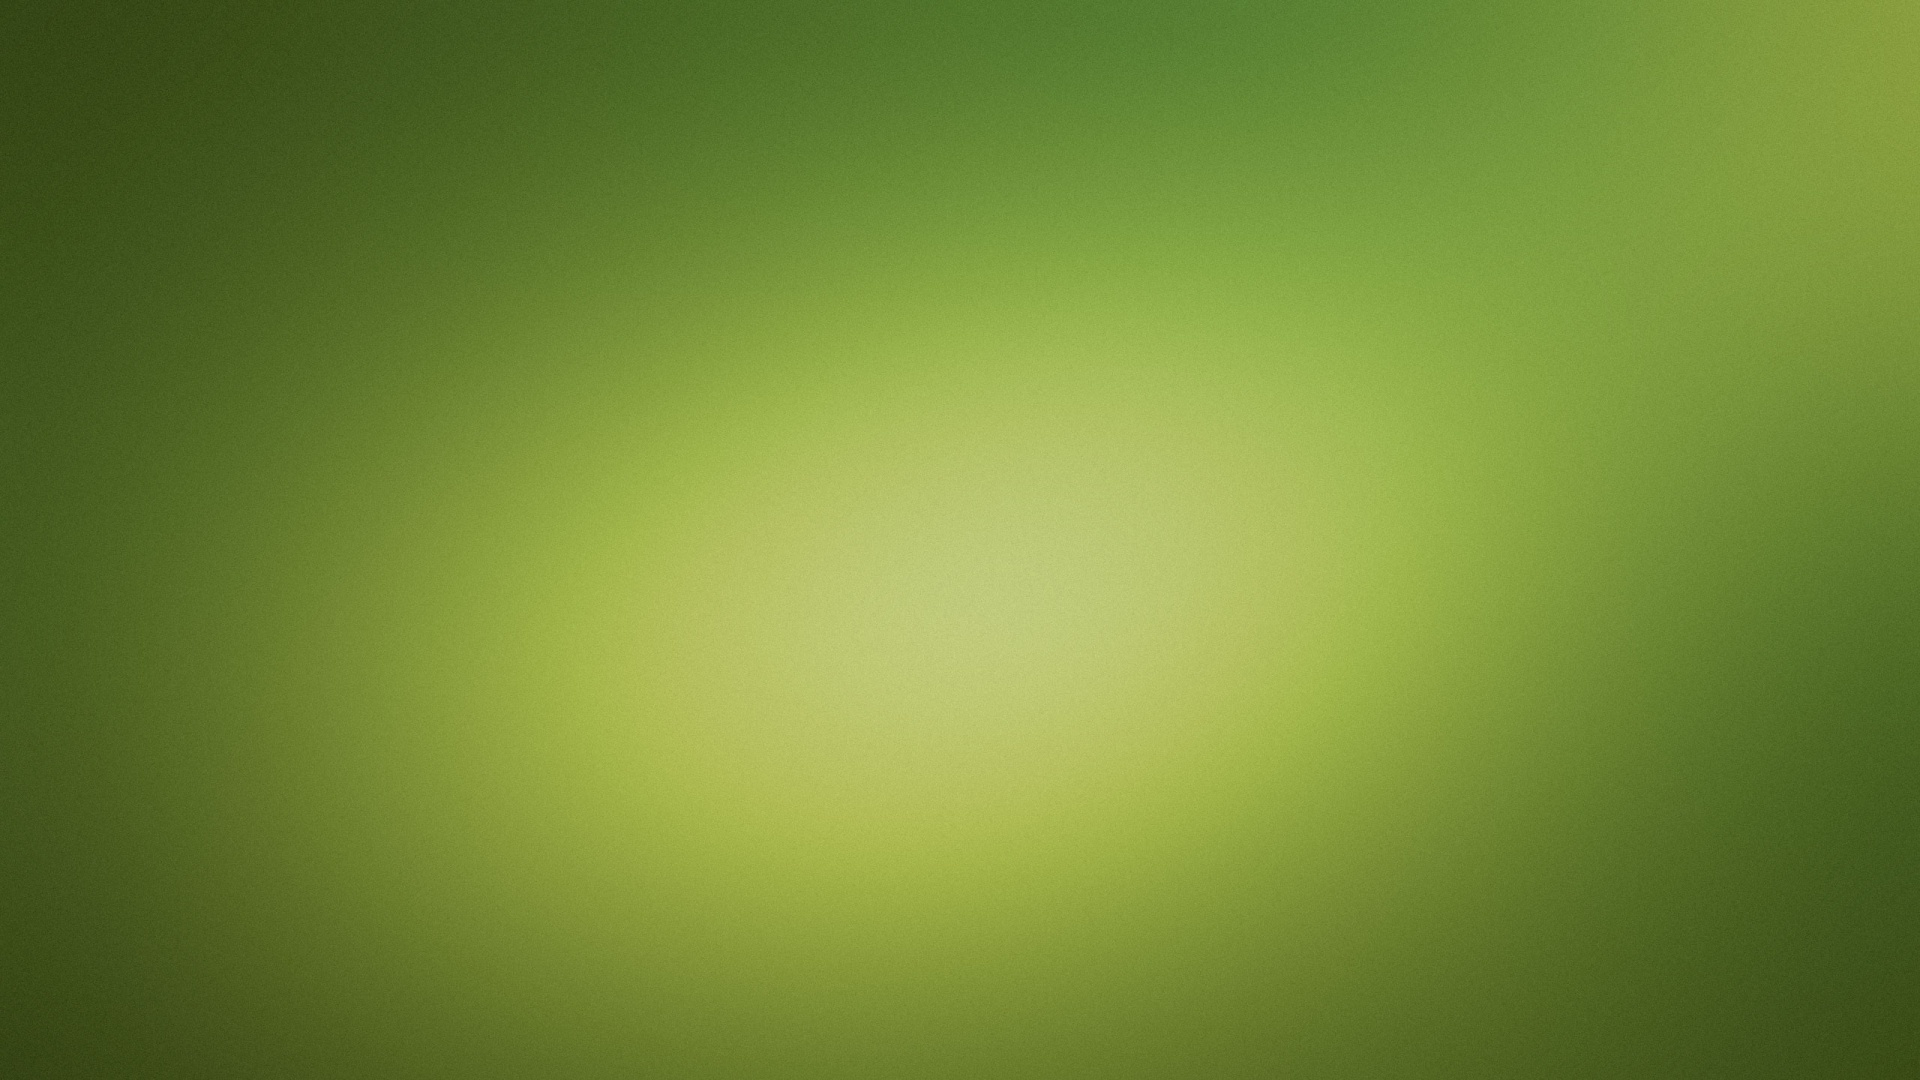 Download Light Green Background Wallpaper in 1920x1080 1920x1080